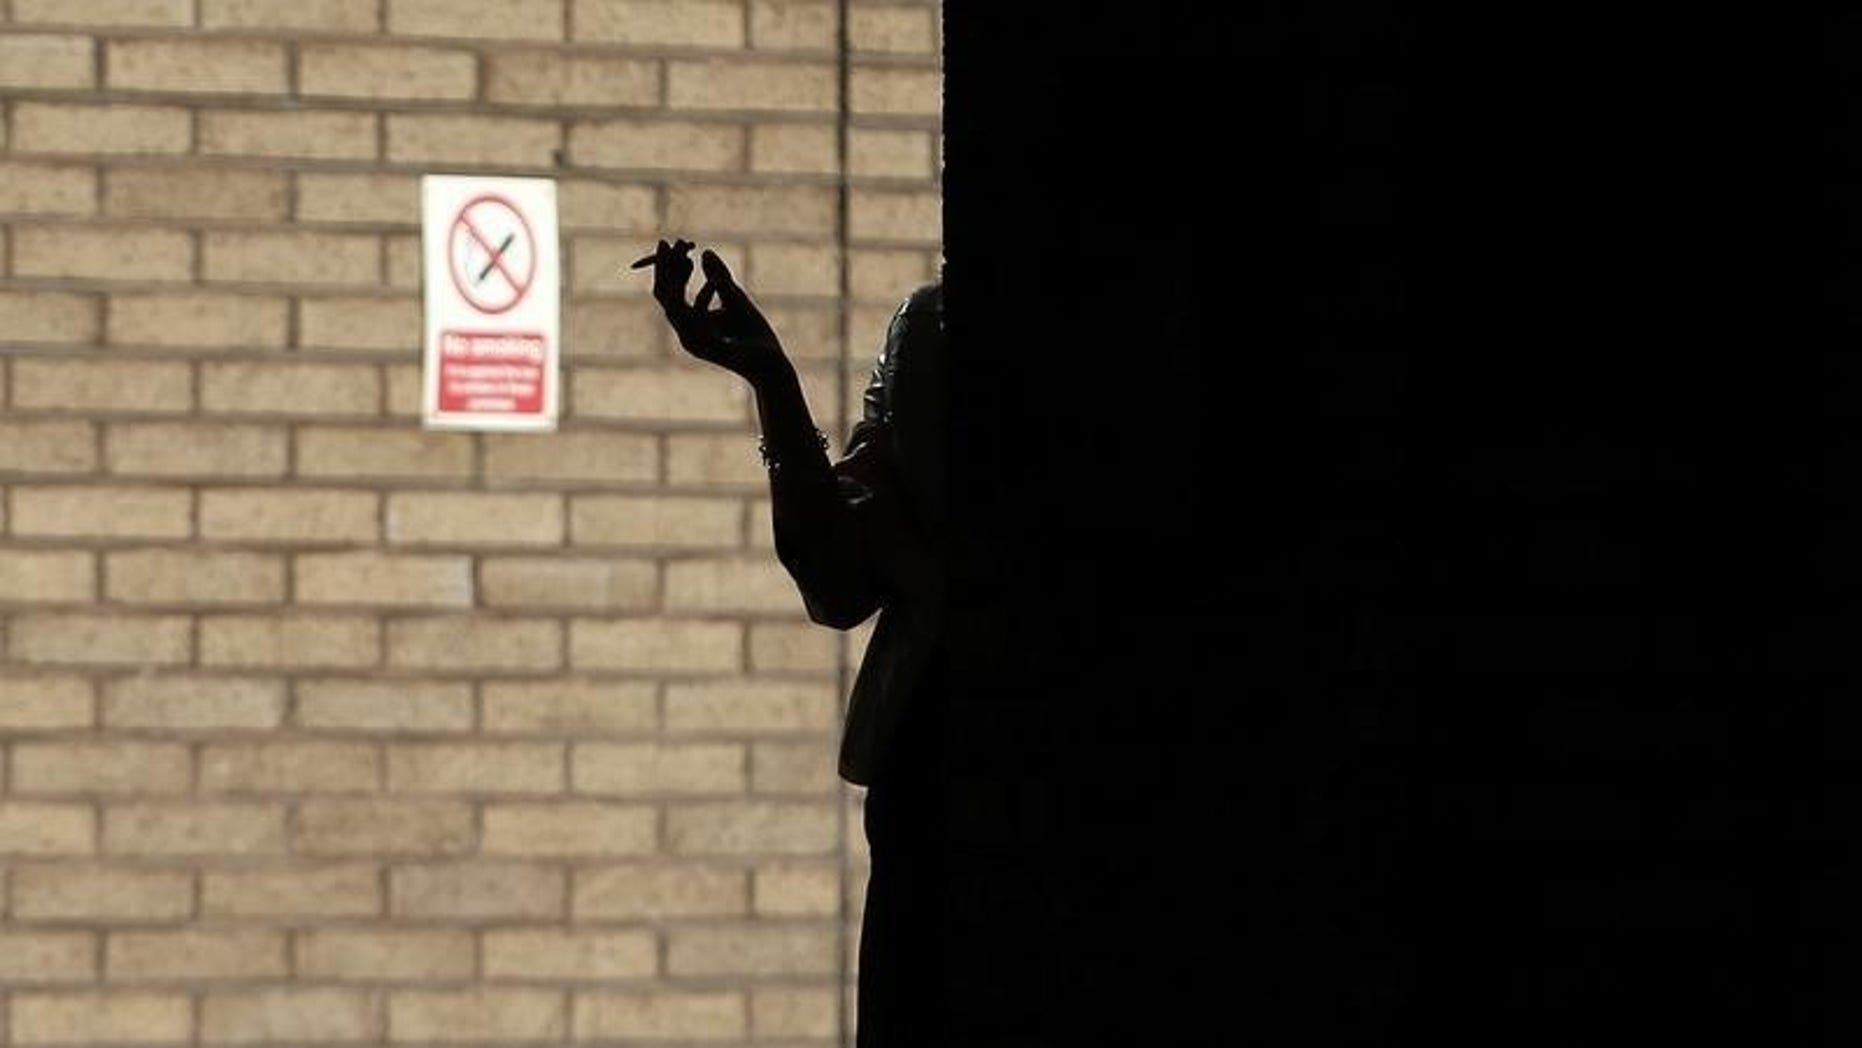 A woman smokes in the shadows outside Southwark Crown Court in central London, March 5, 2014. REUTERS/Andrew Winning